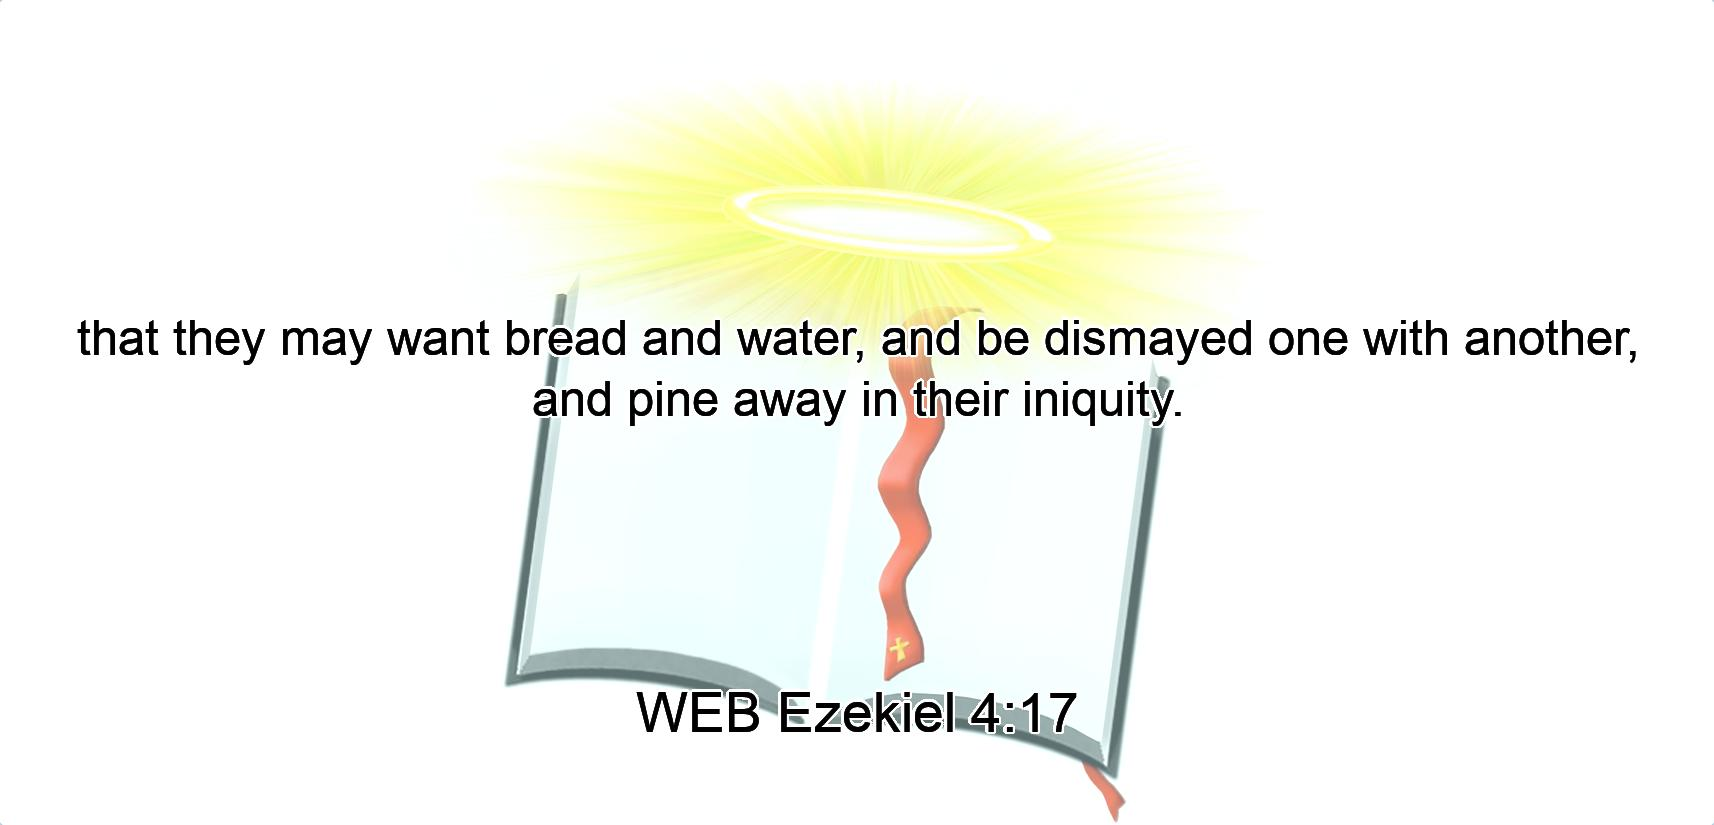 that they may want bread and water, and be dismayed one with another, and pine away in their iniquity.